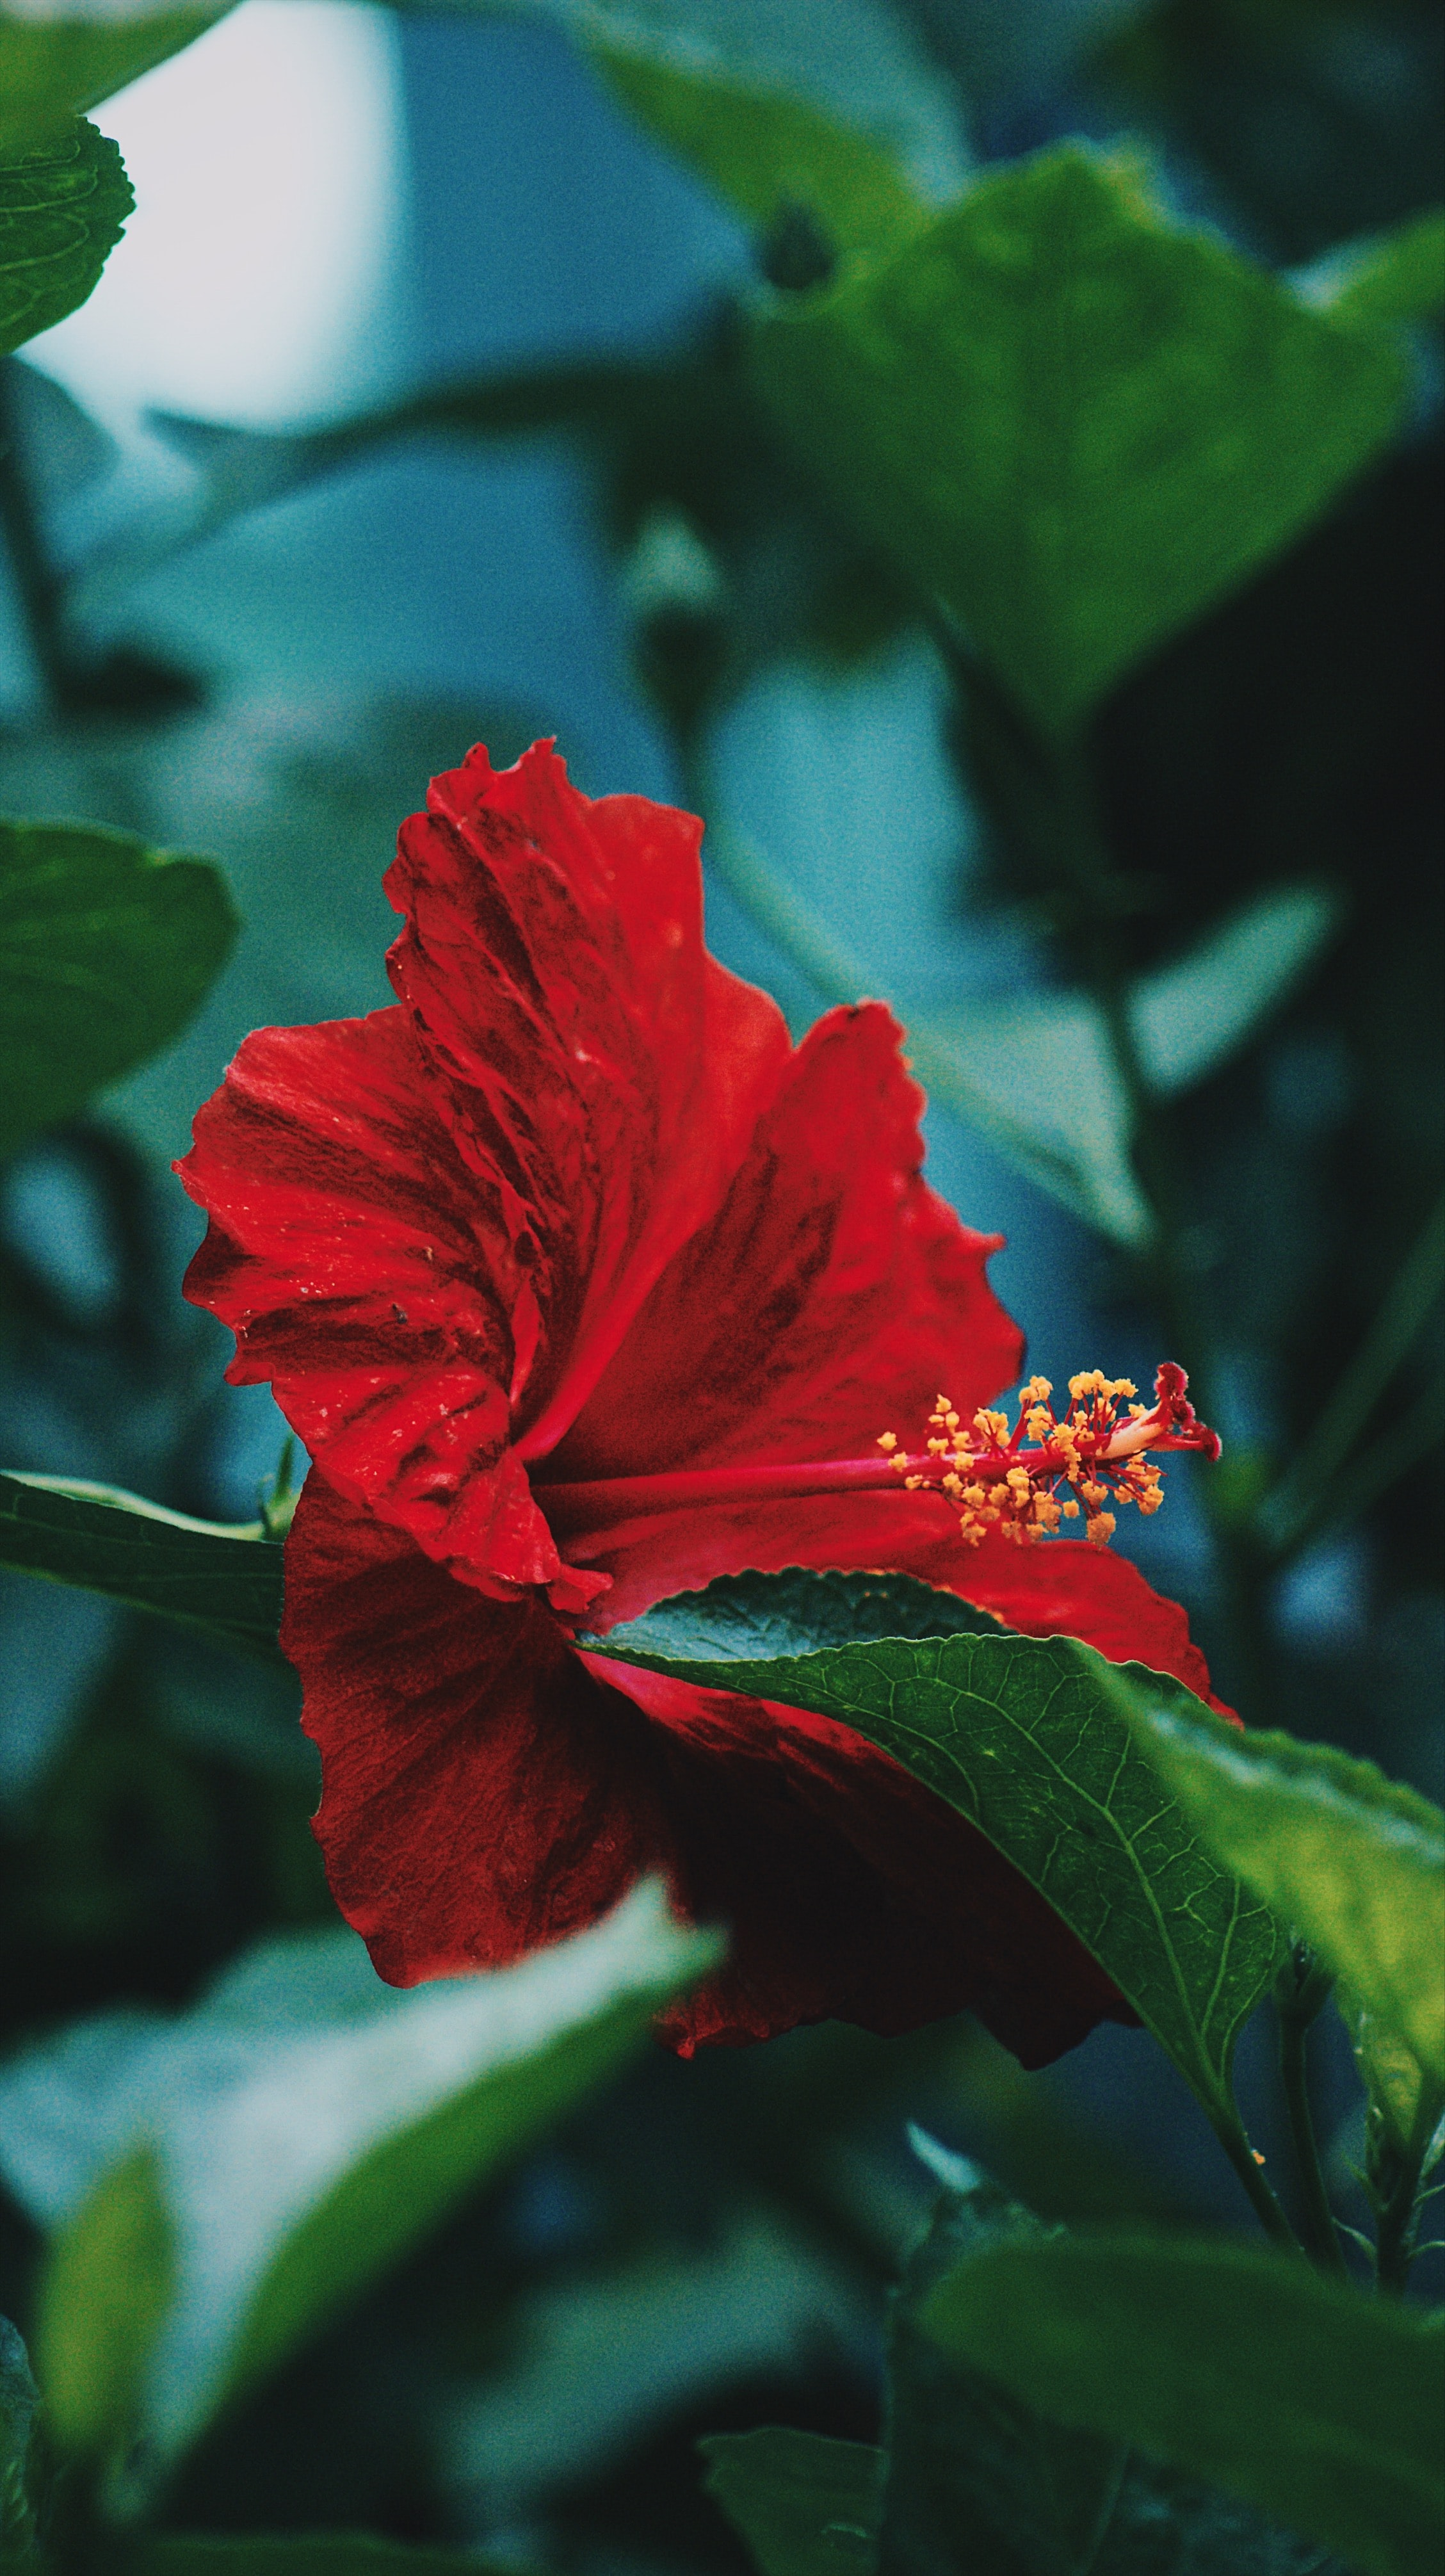 Macro Photography Of Red Hibiscus Flower Photo Free Flower Image On Unsplash